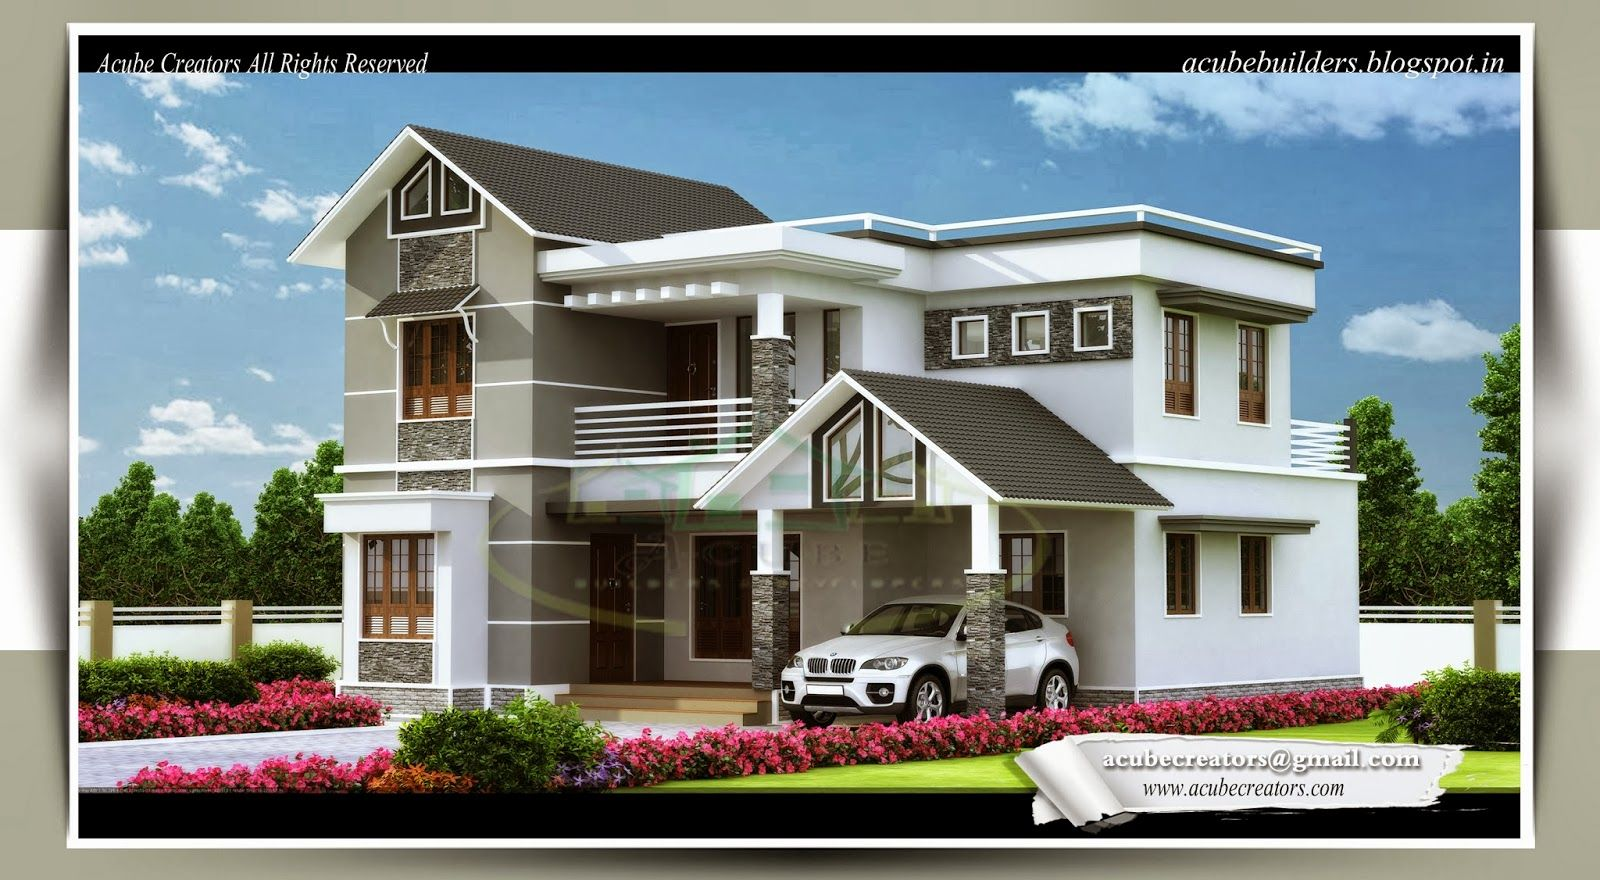 Home Design Pictures Awesome Home Design Gallery Fresh Ideas Kerala Home Design Photos  Home . Decorating Inspiration